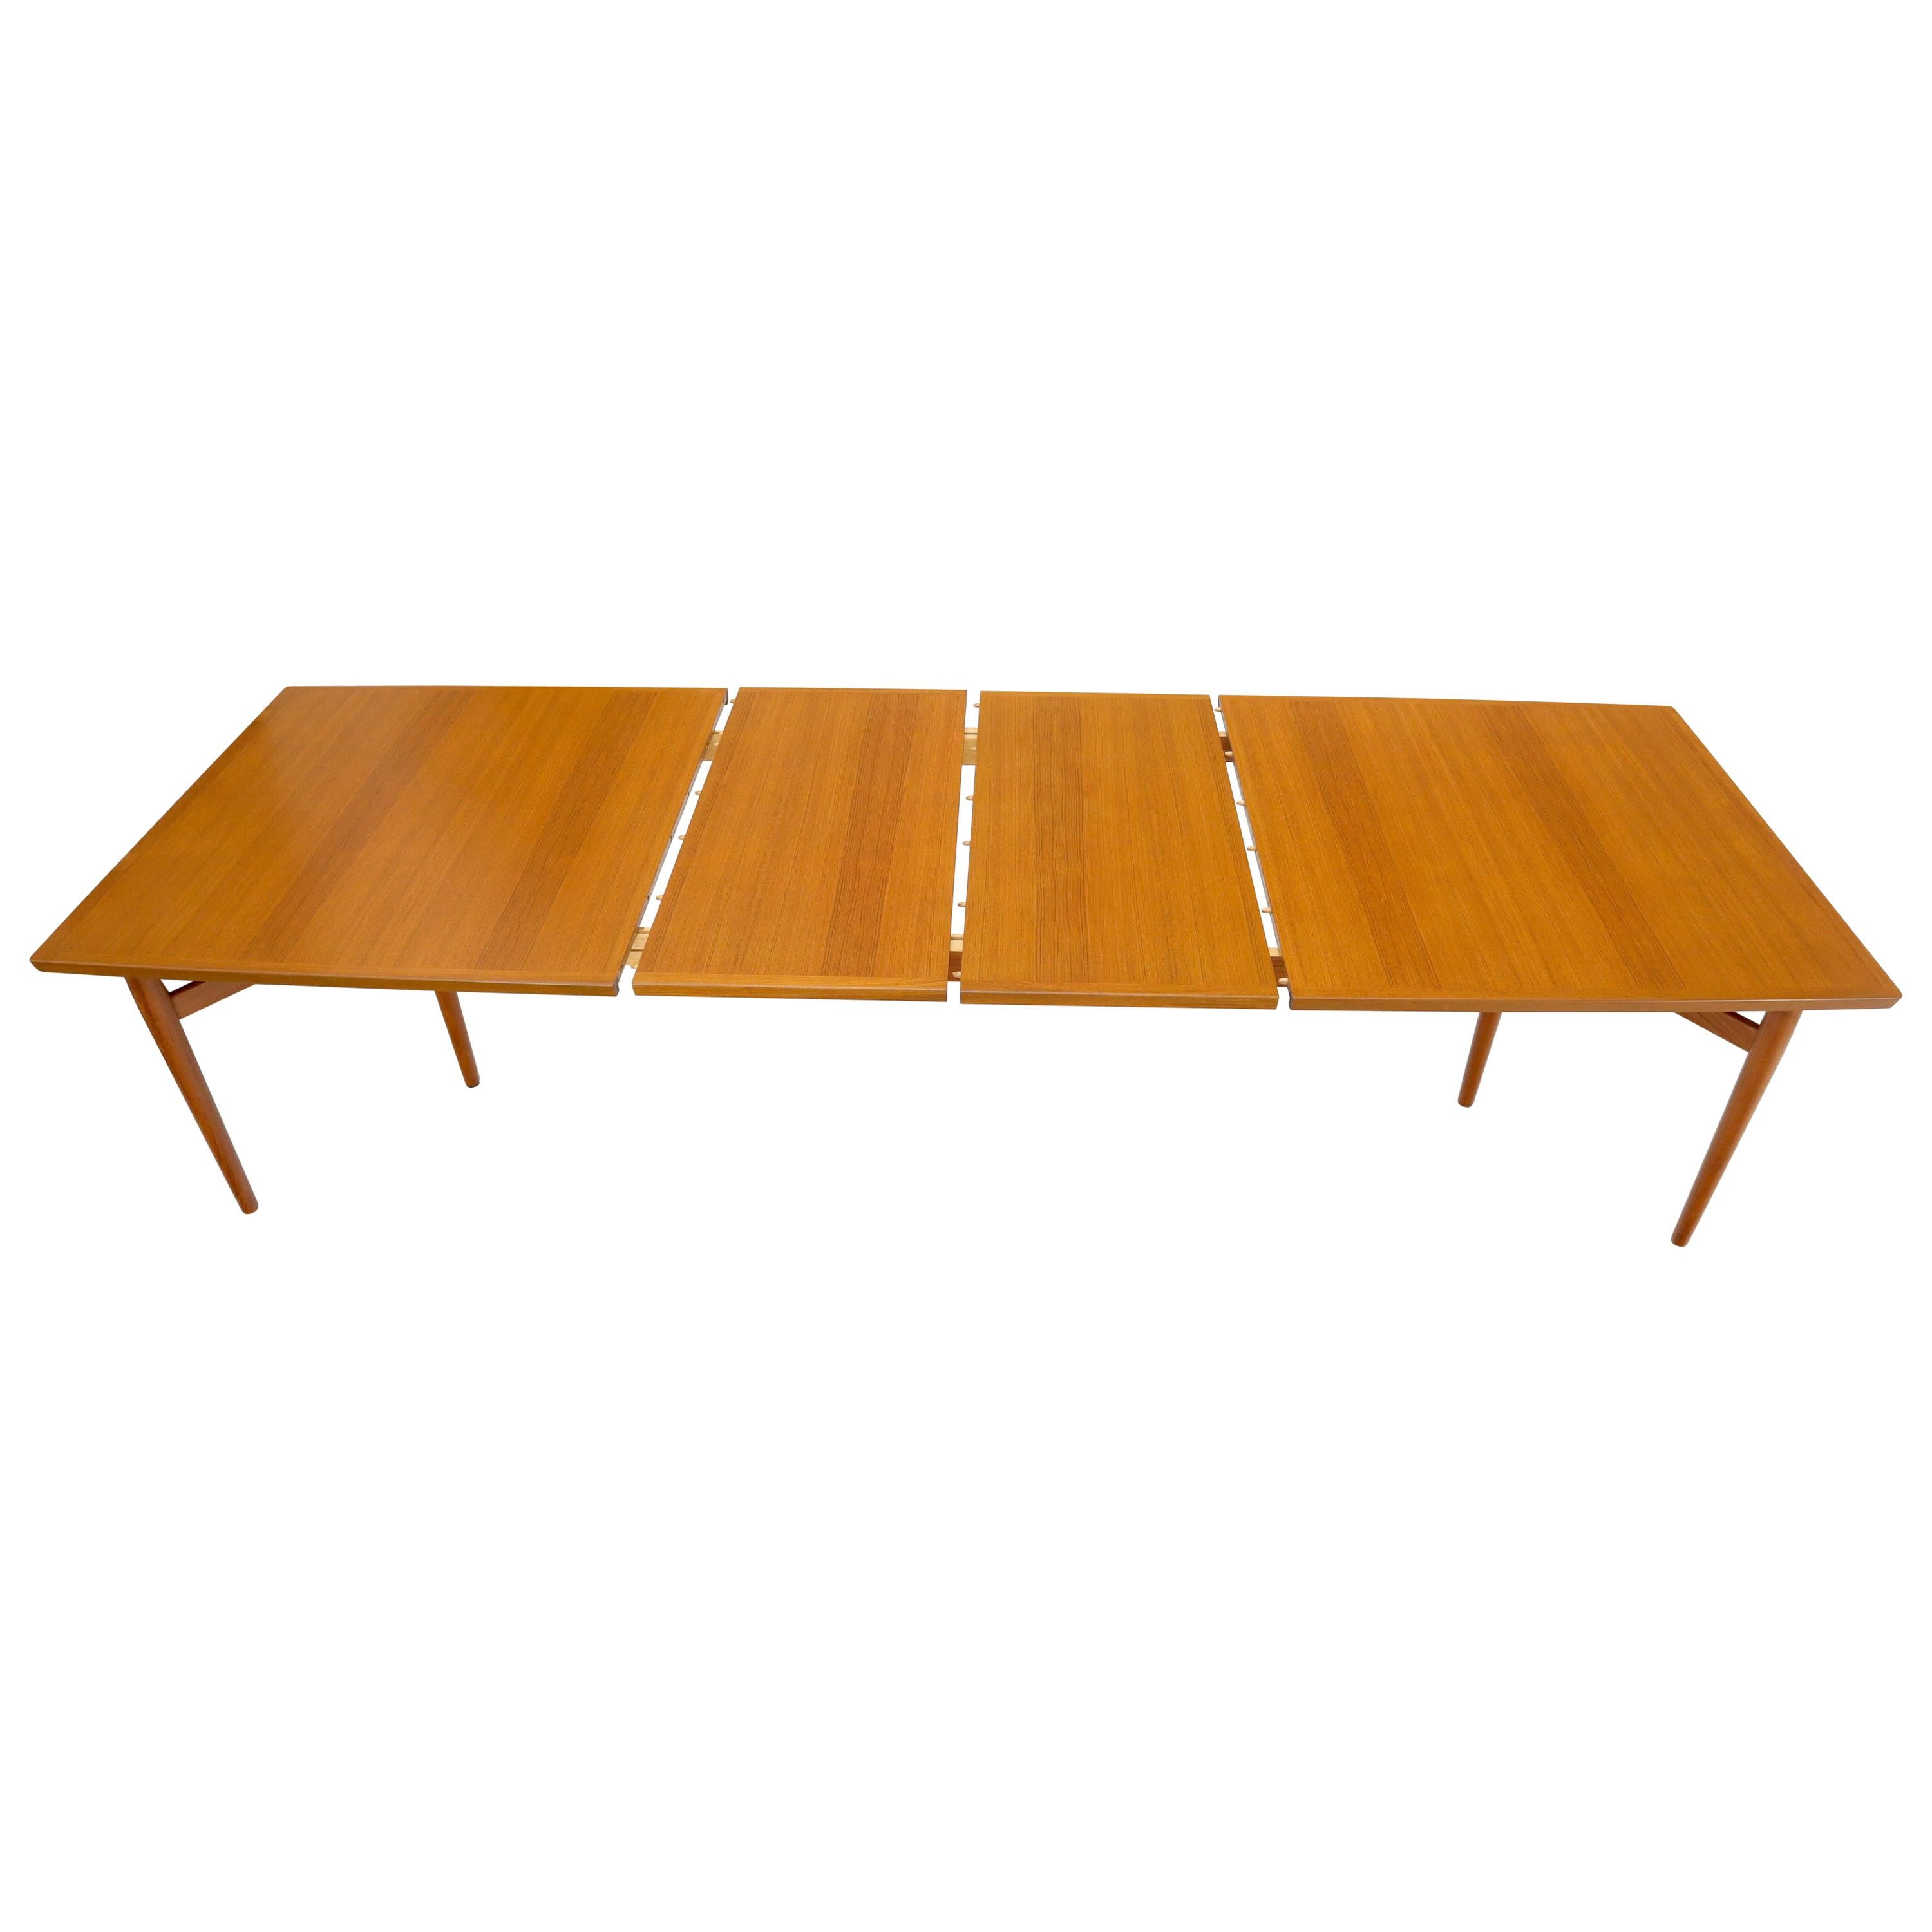 Arne Vodder for Sibast Large Oversize Dining Conference Table Extensions